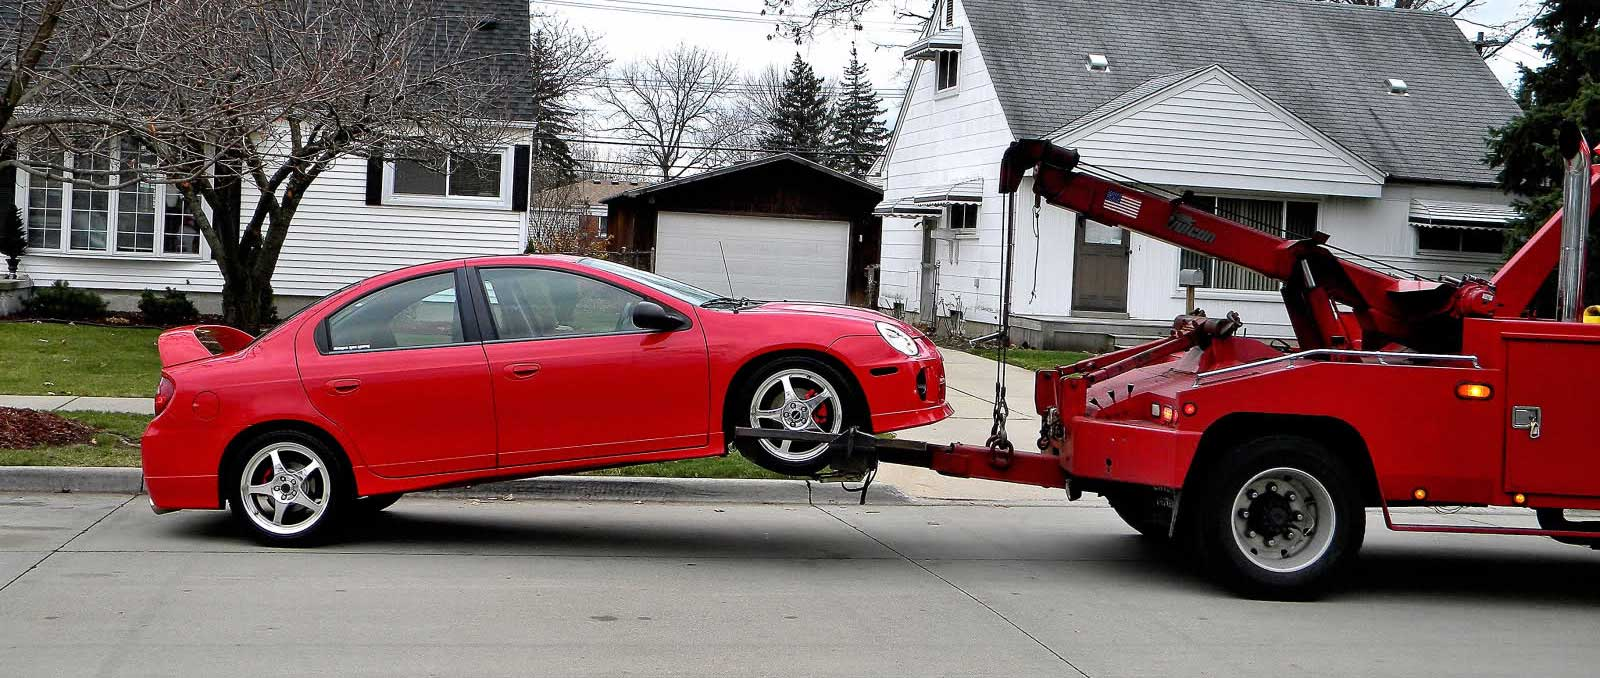 Cheap Two Wheel Tow with Red Car